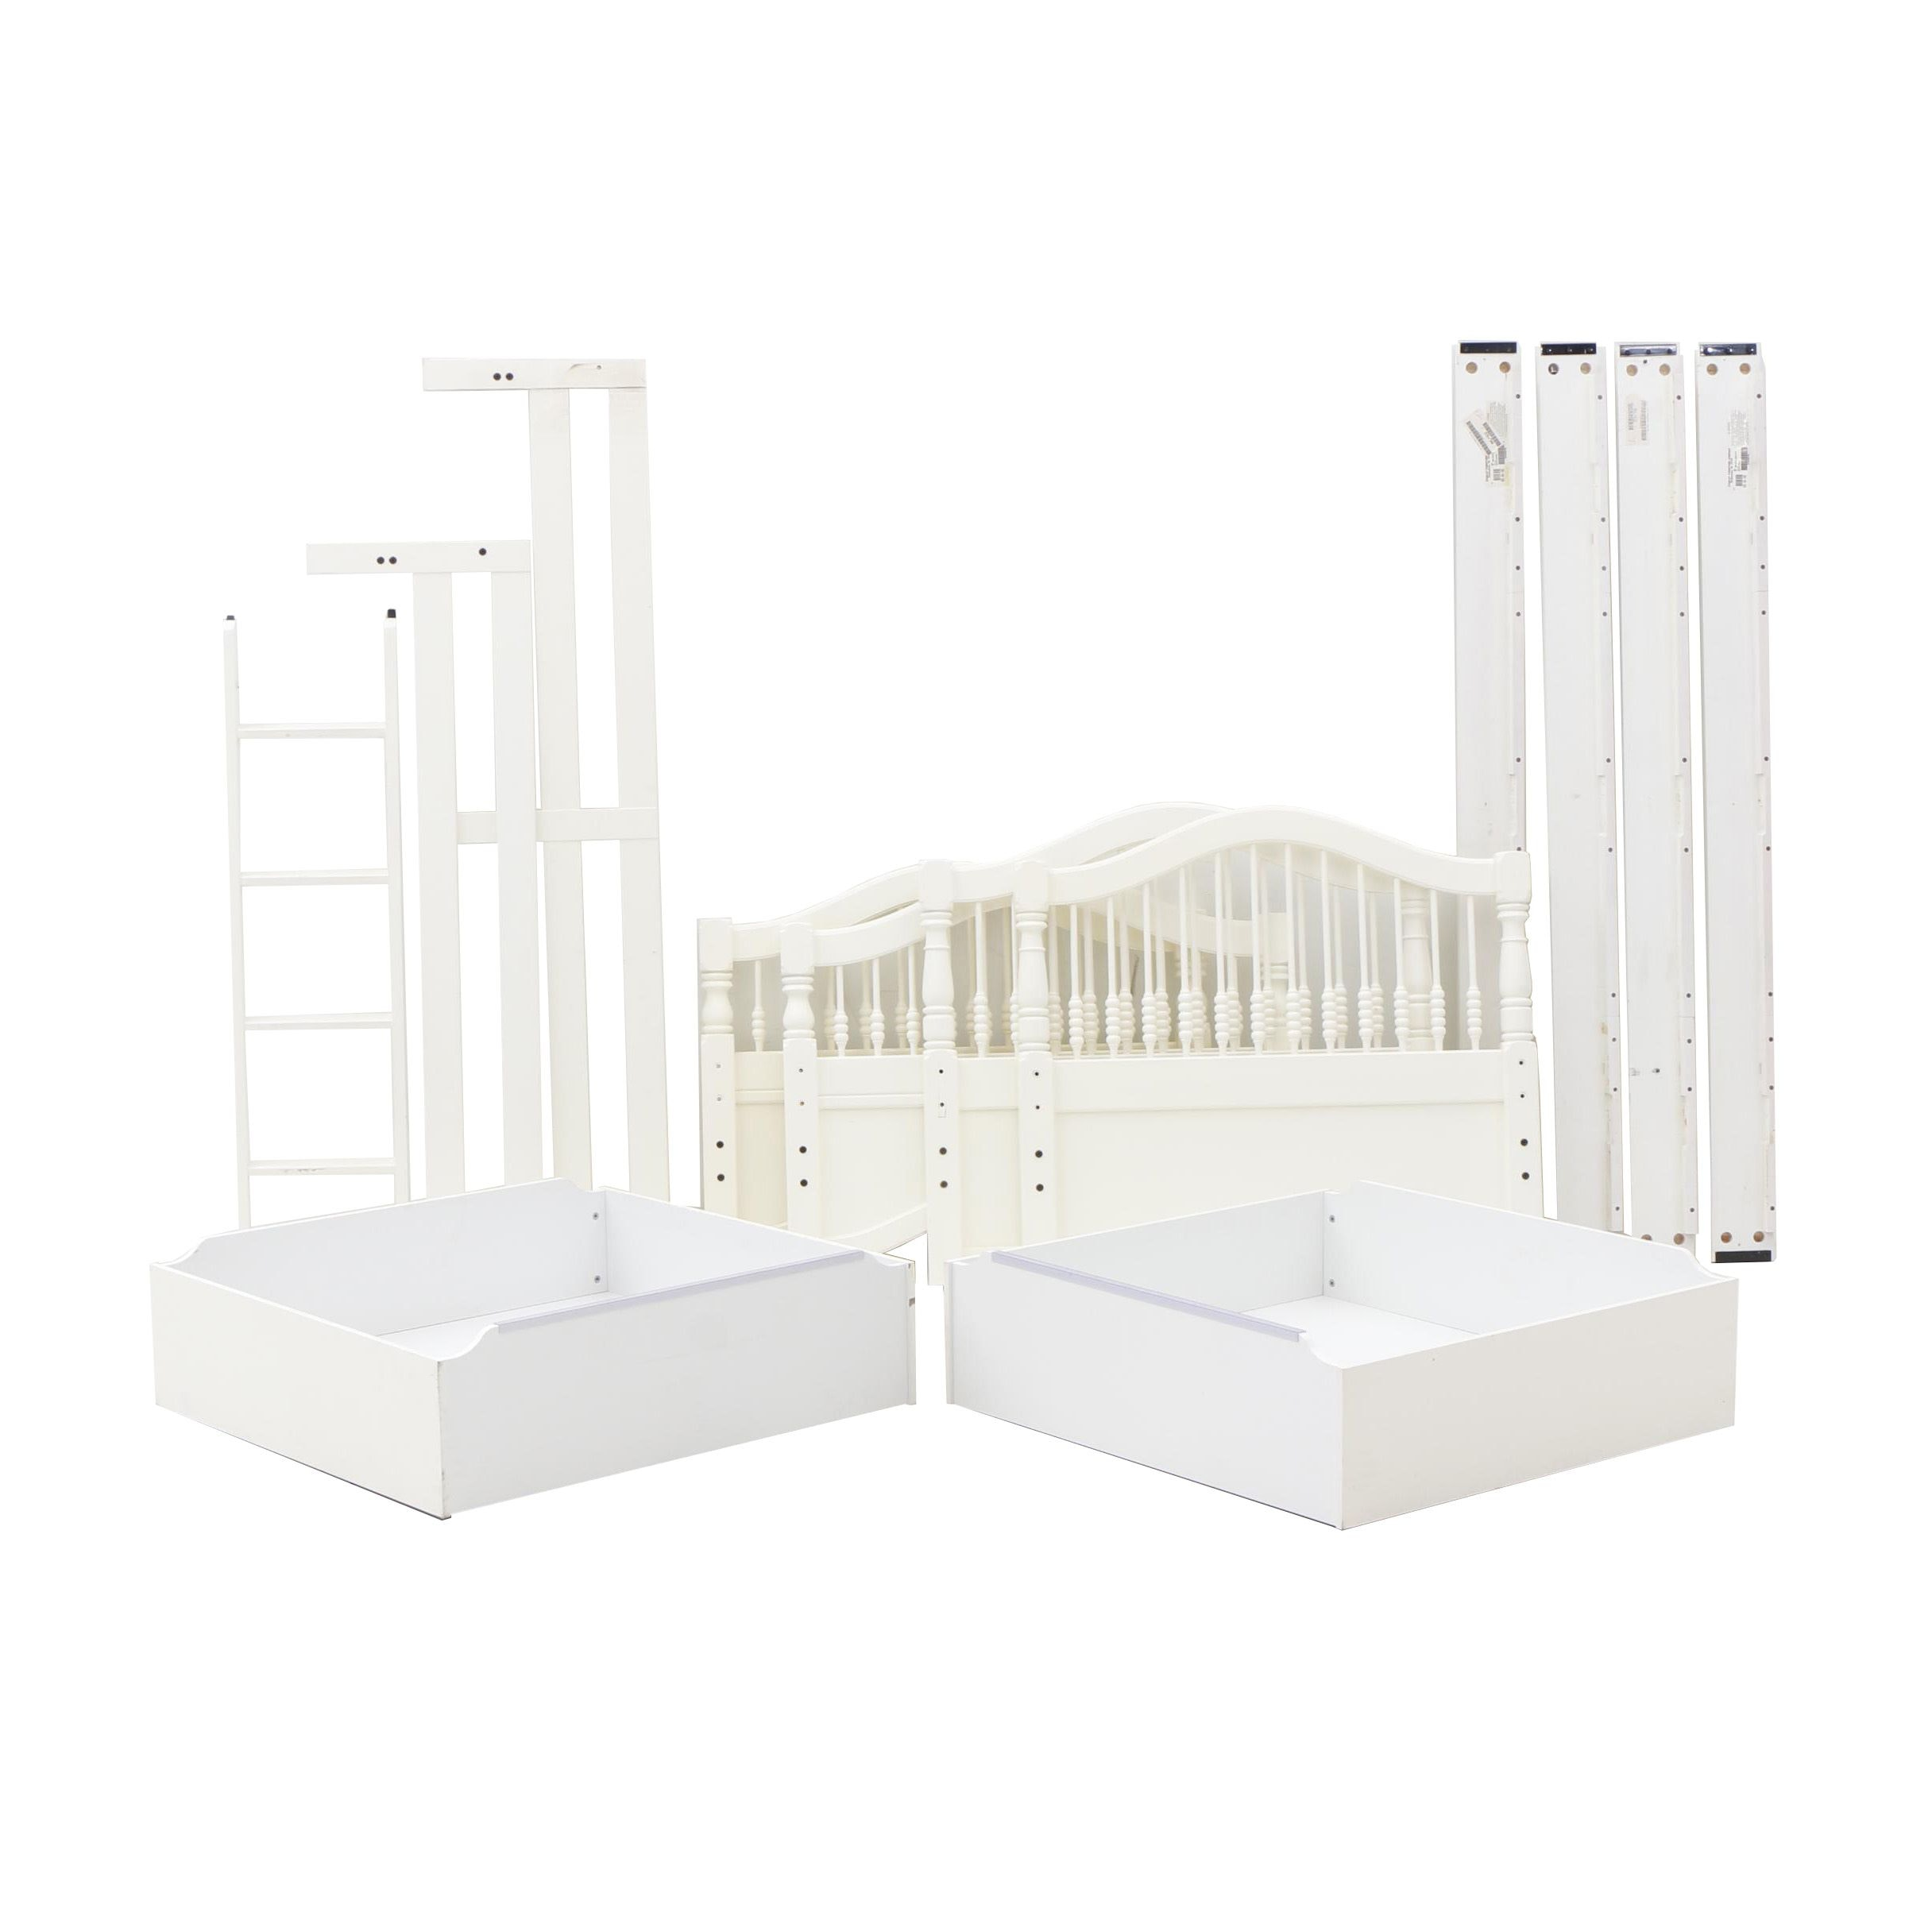 White Pained Stanley Furniture Bunk Bed with Trundle